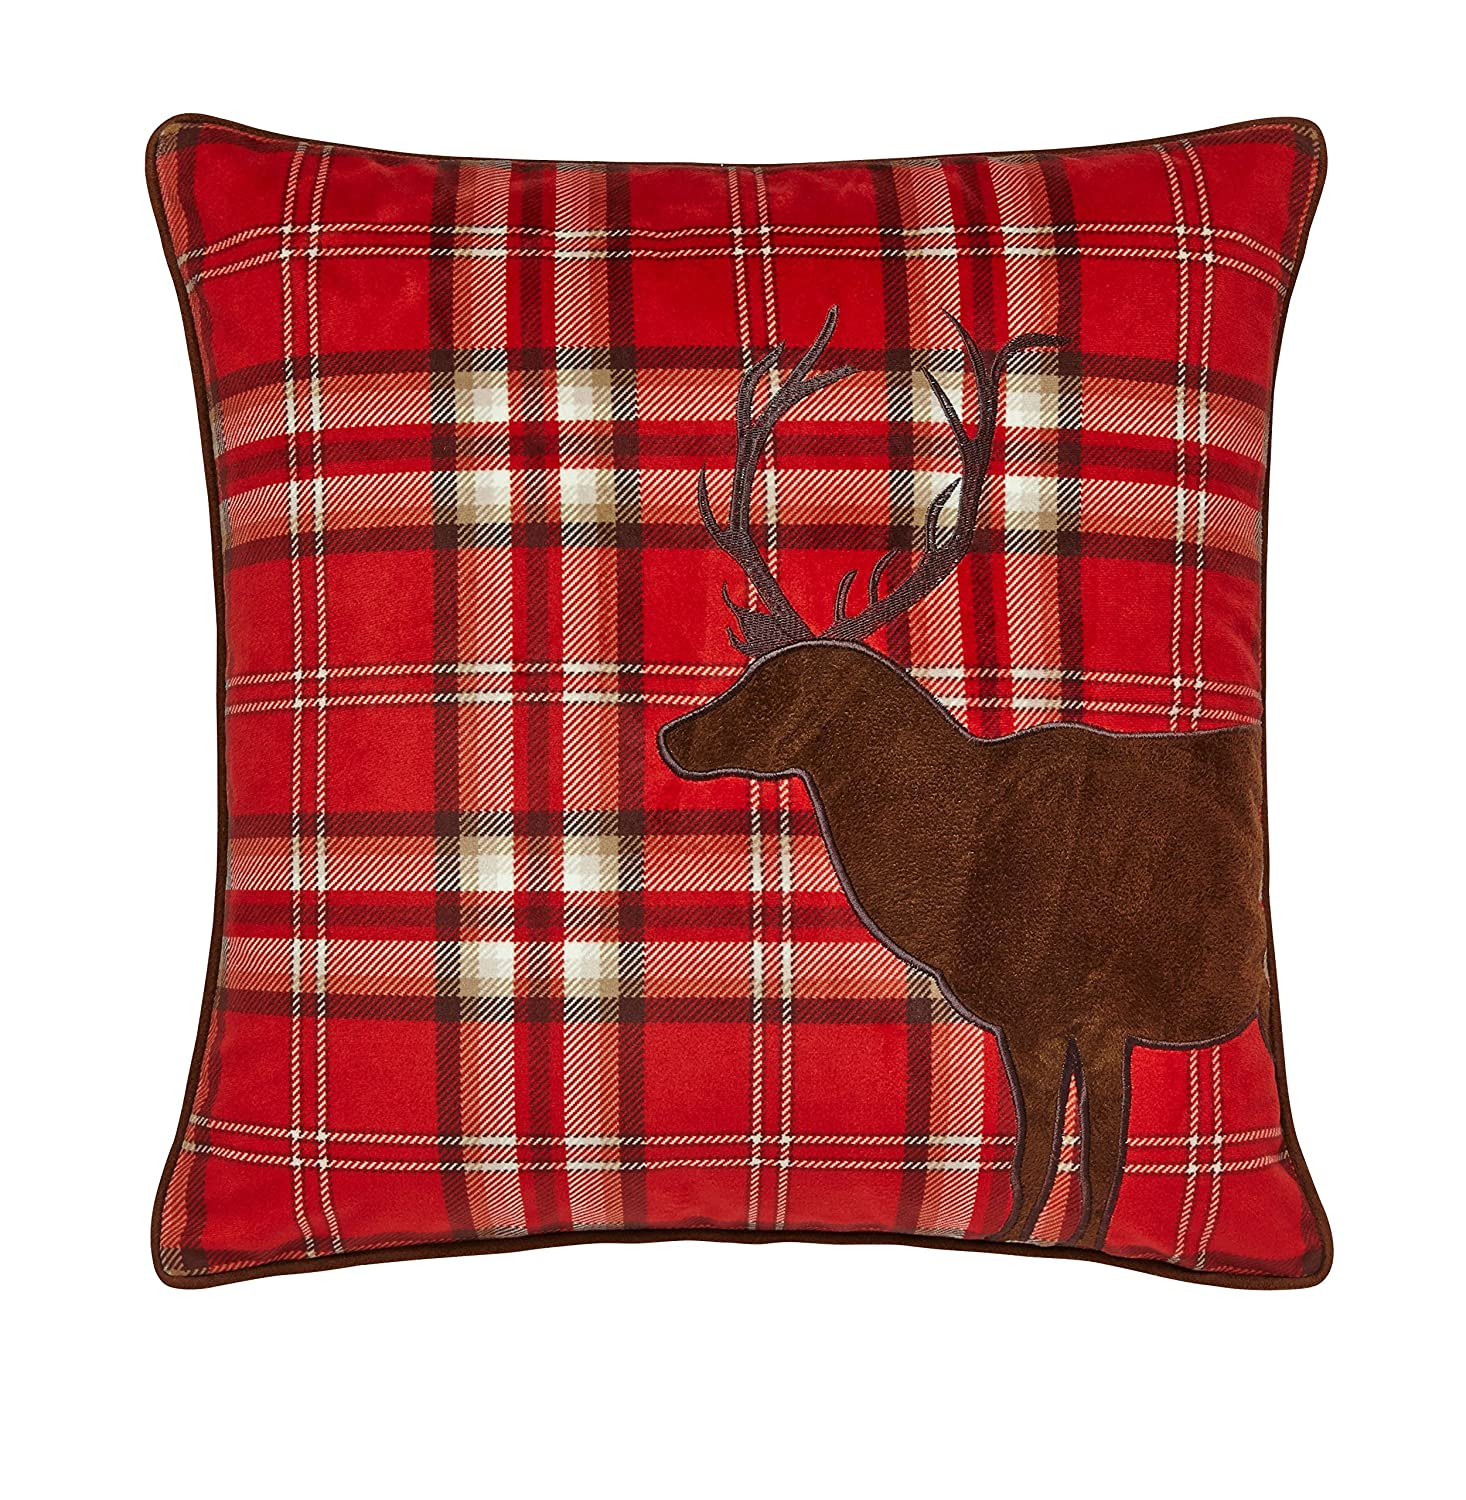 Catherine Lansfield Tartan Stag Cushion Cover Red Amazon